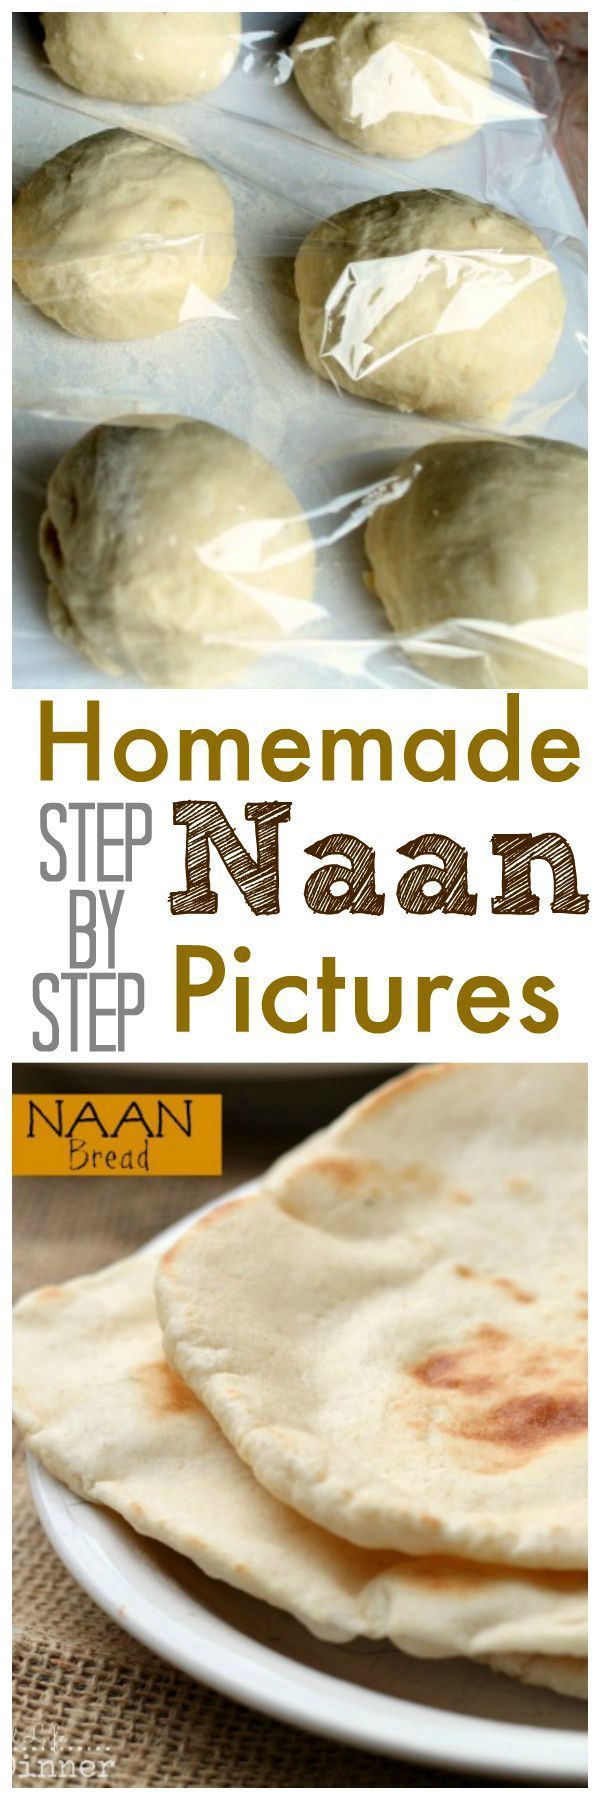 How to Make Naan Bread (Step by Step Instructions and Pictures